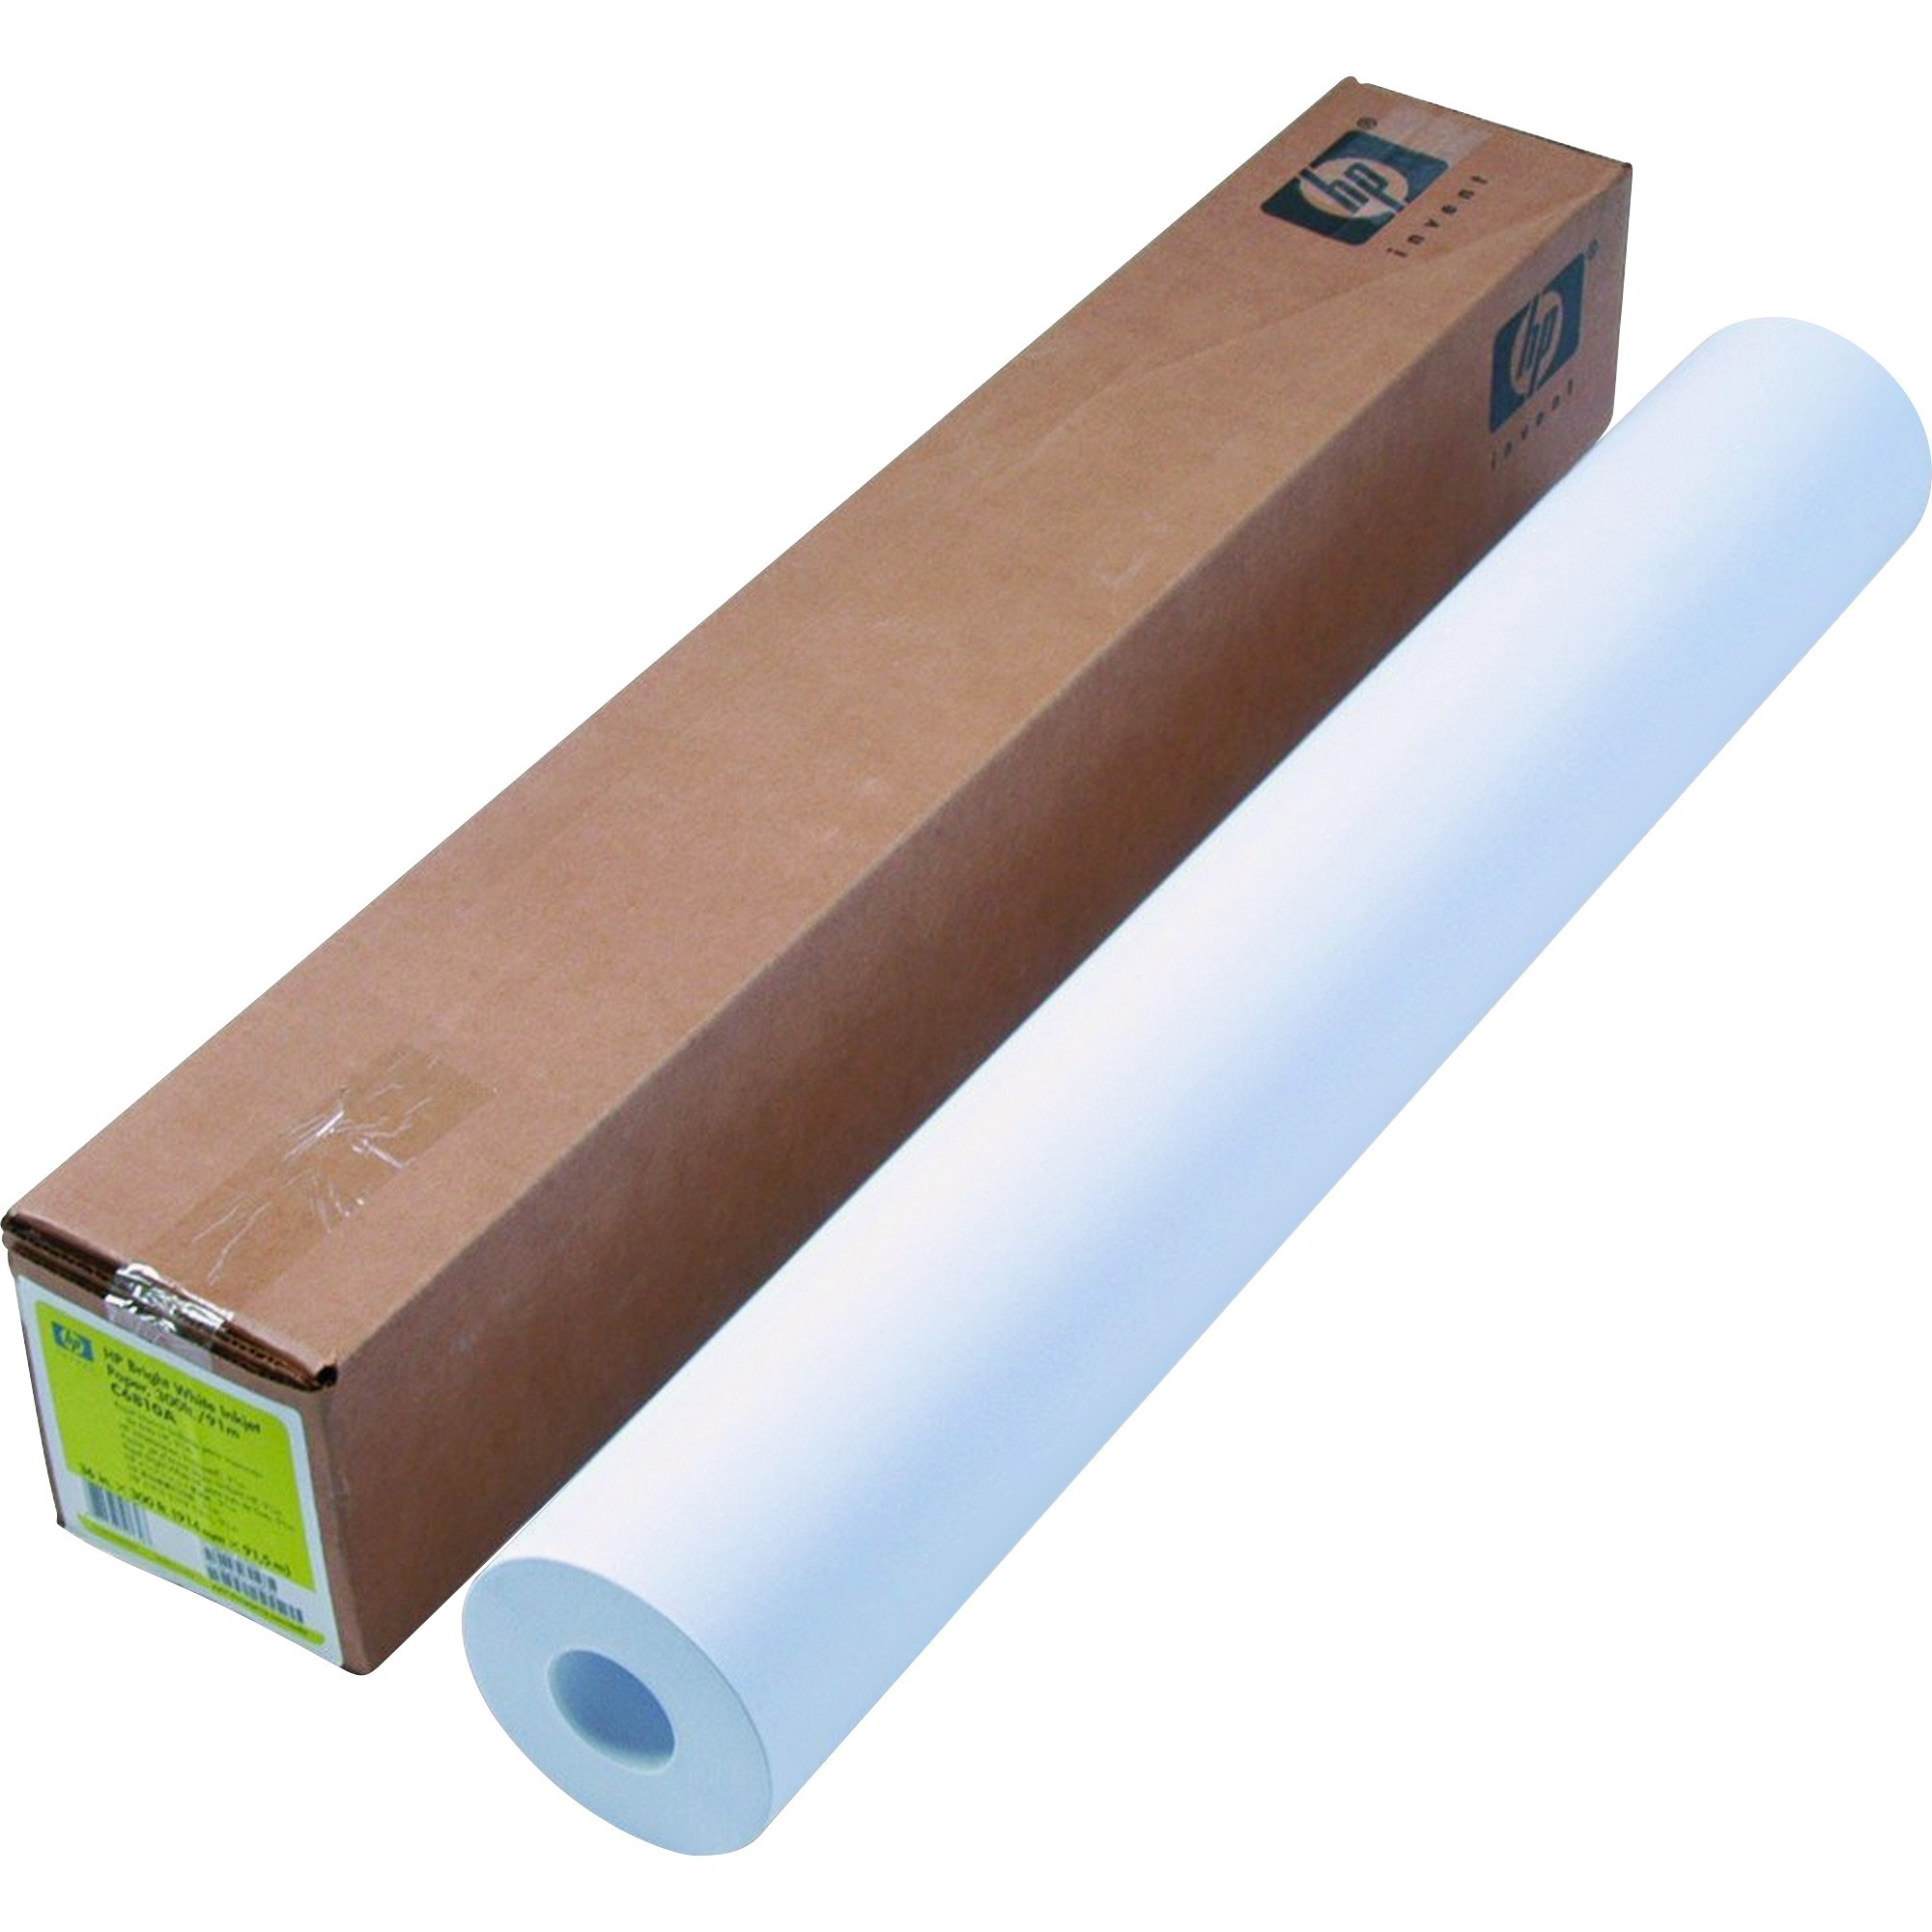 HP, HEWC6810A, Bright White Inkjet Bond Paper, 1 Roll, White